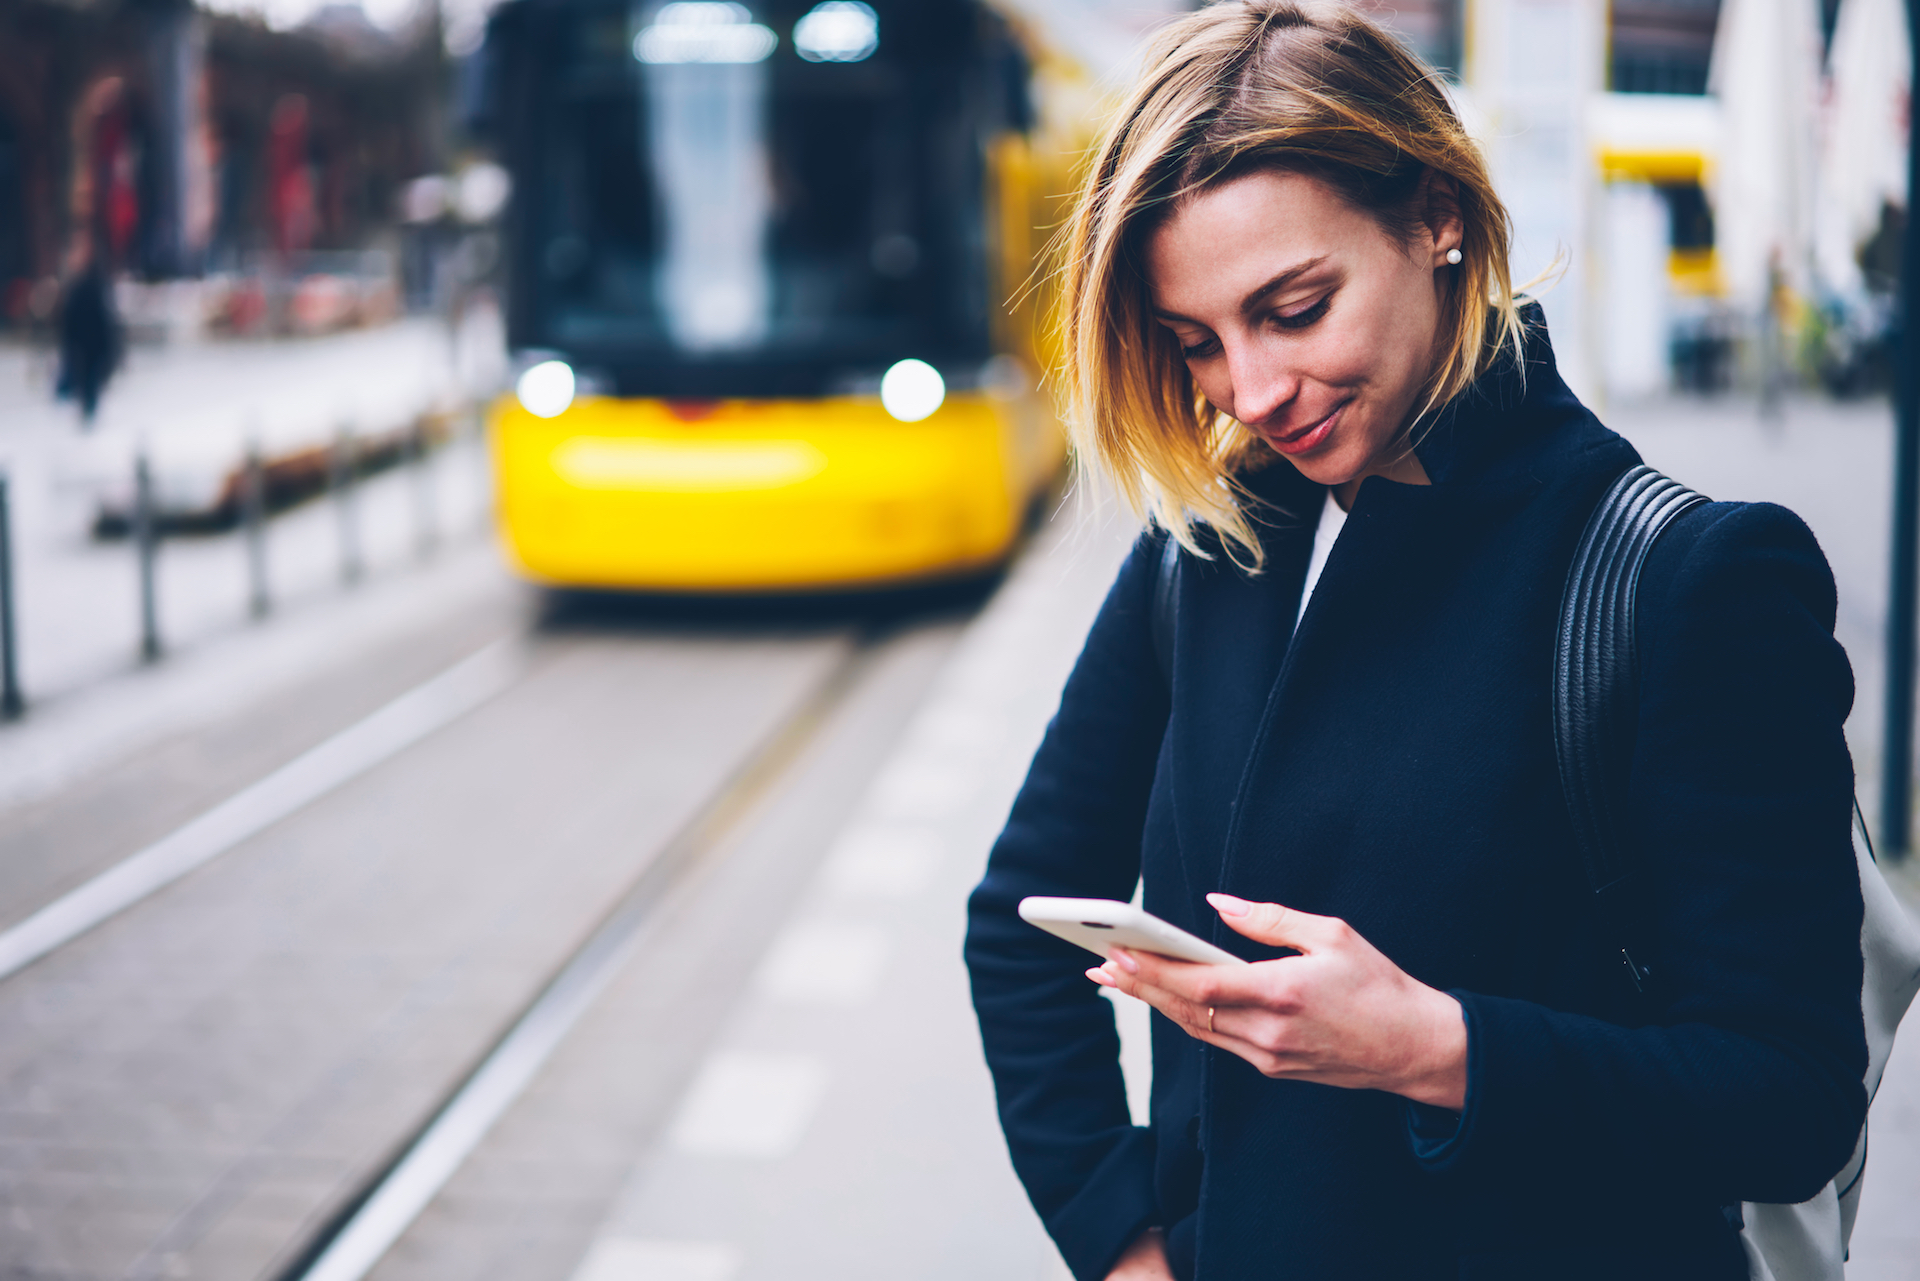 Woman looking at her phone while a city bus approaches in the background